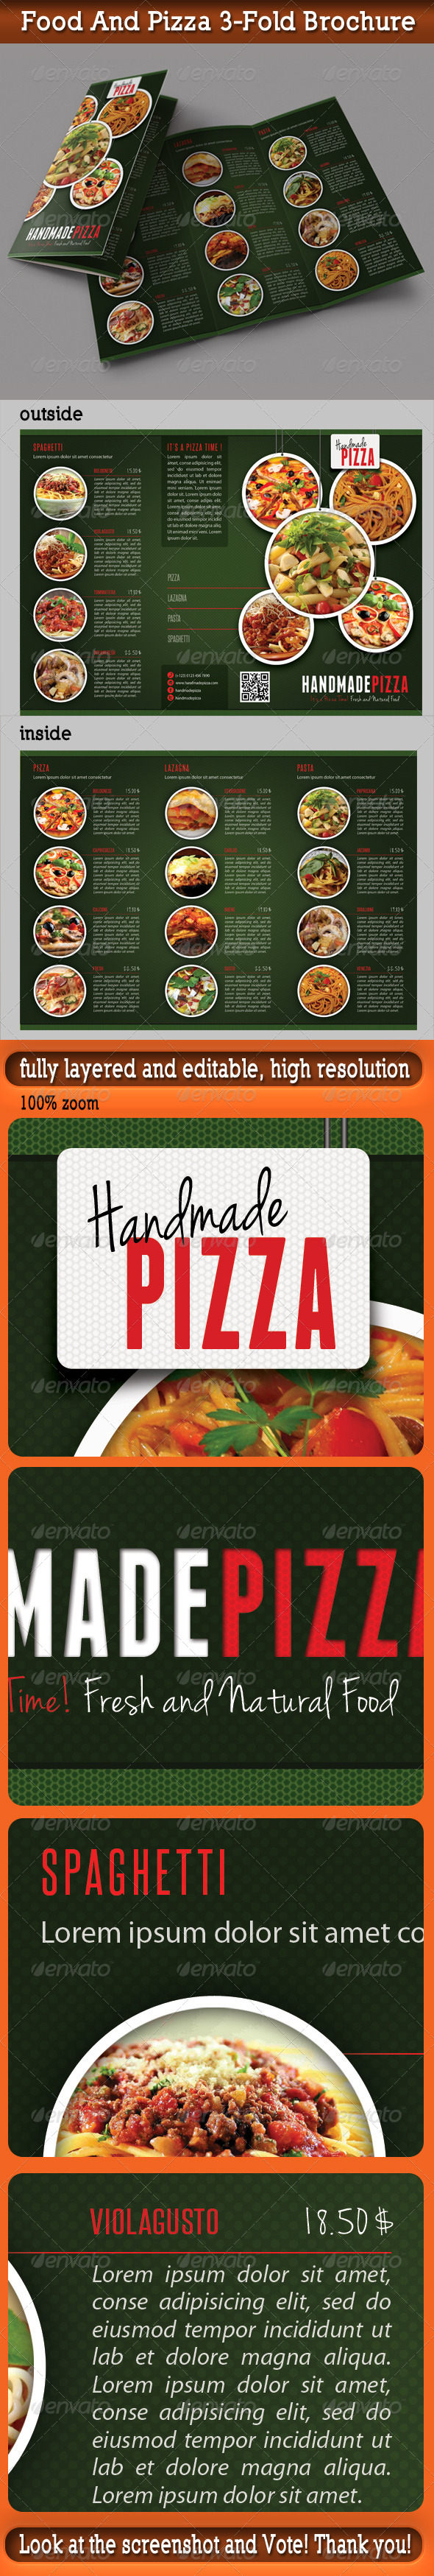 GraphicRiver Food And Pizza 3-Fold Brochure 03 5903461